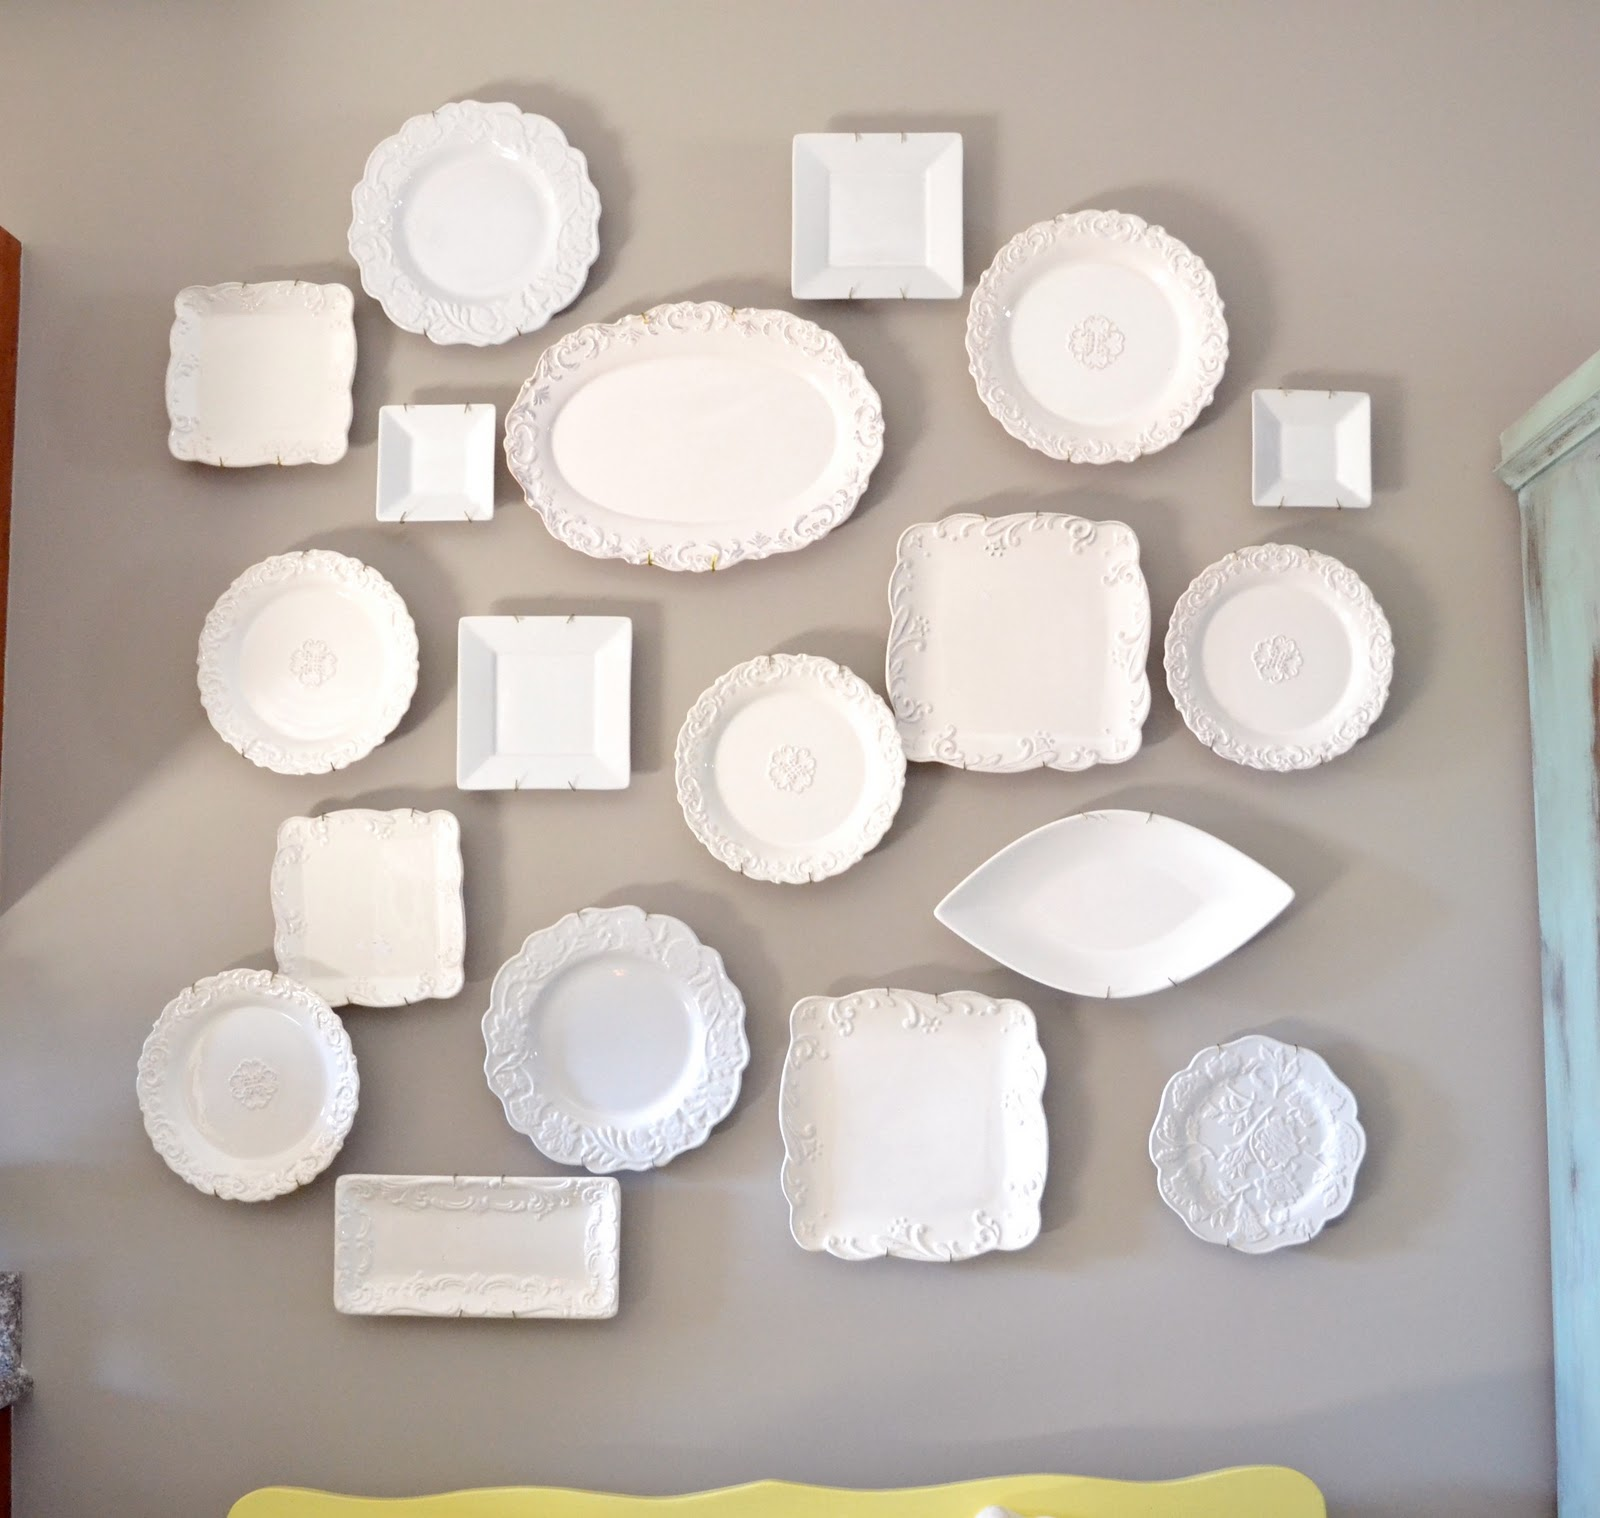 Plate Wall Art Eclectic Plate Wall Art Liz Marie Blog